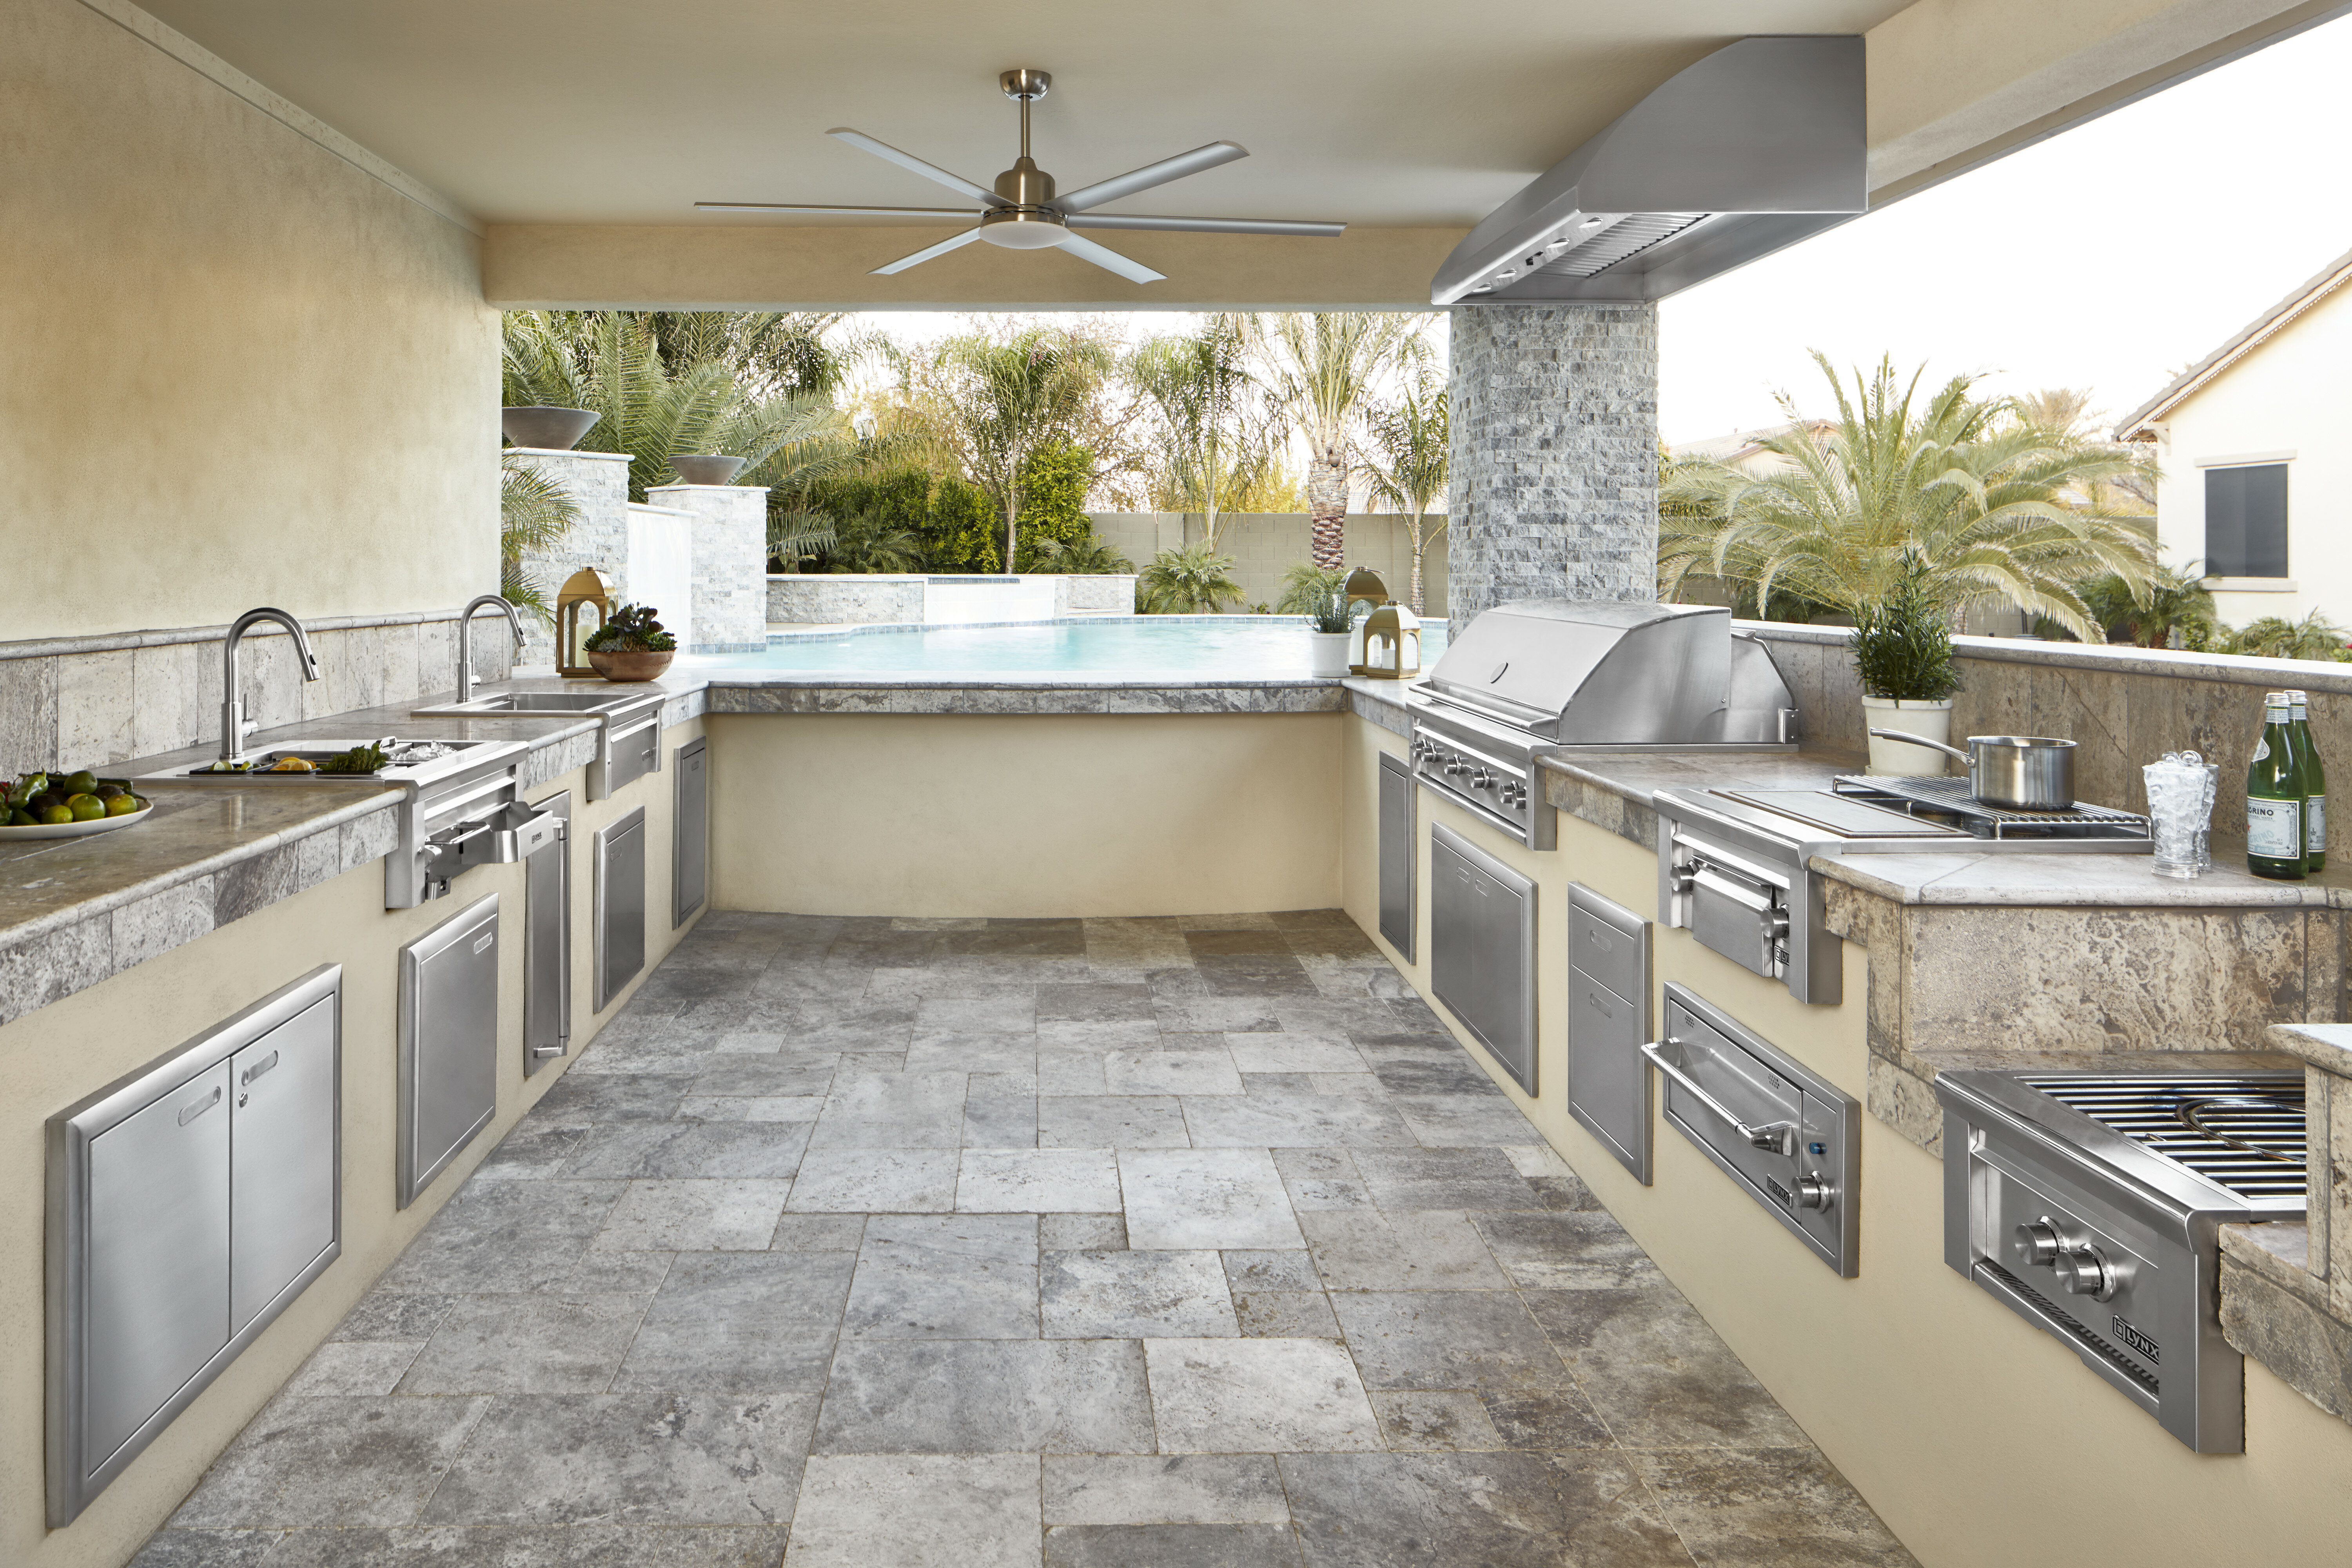 The Ultimate Guide to Designing an Outdoor Kitchen | Wayfair